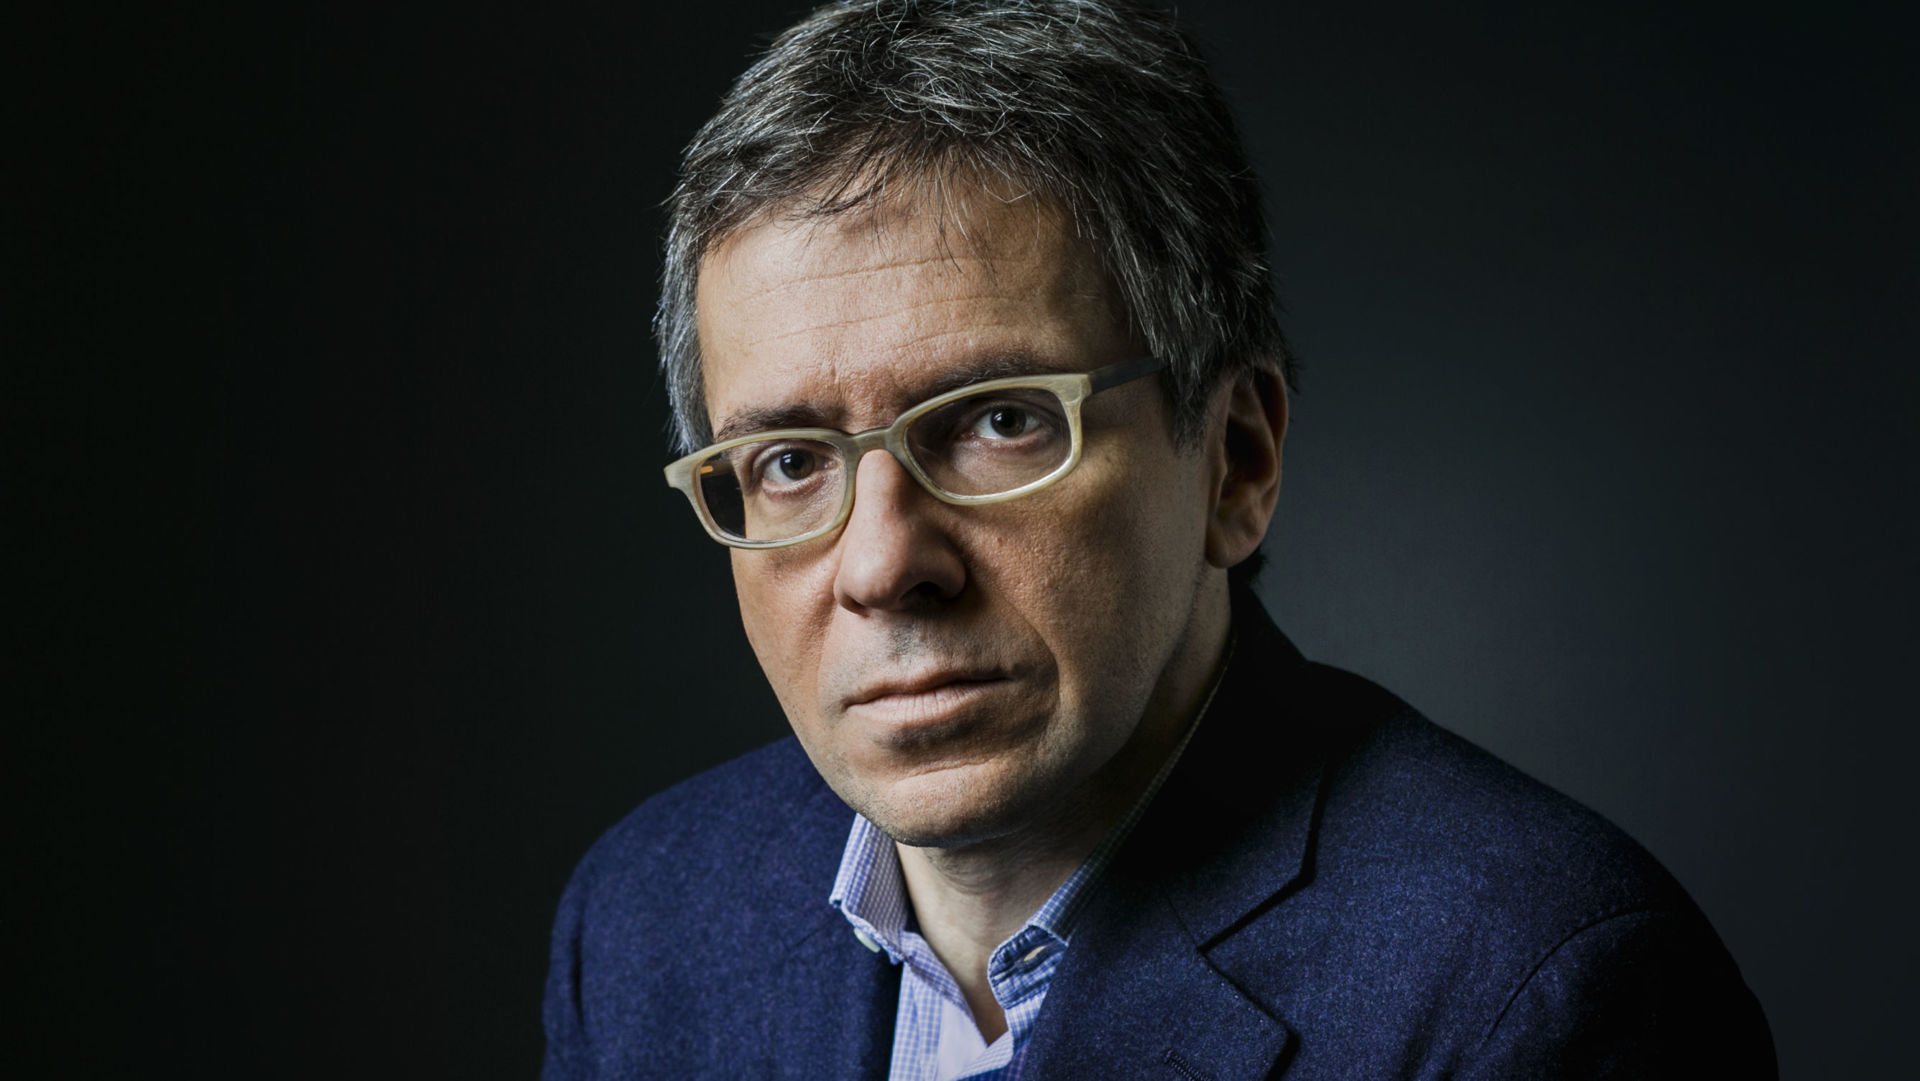 Ian Bremmer, host of GZERO WORLD with Ian Bremmer. Photo: Richard Jopson.